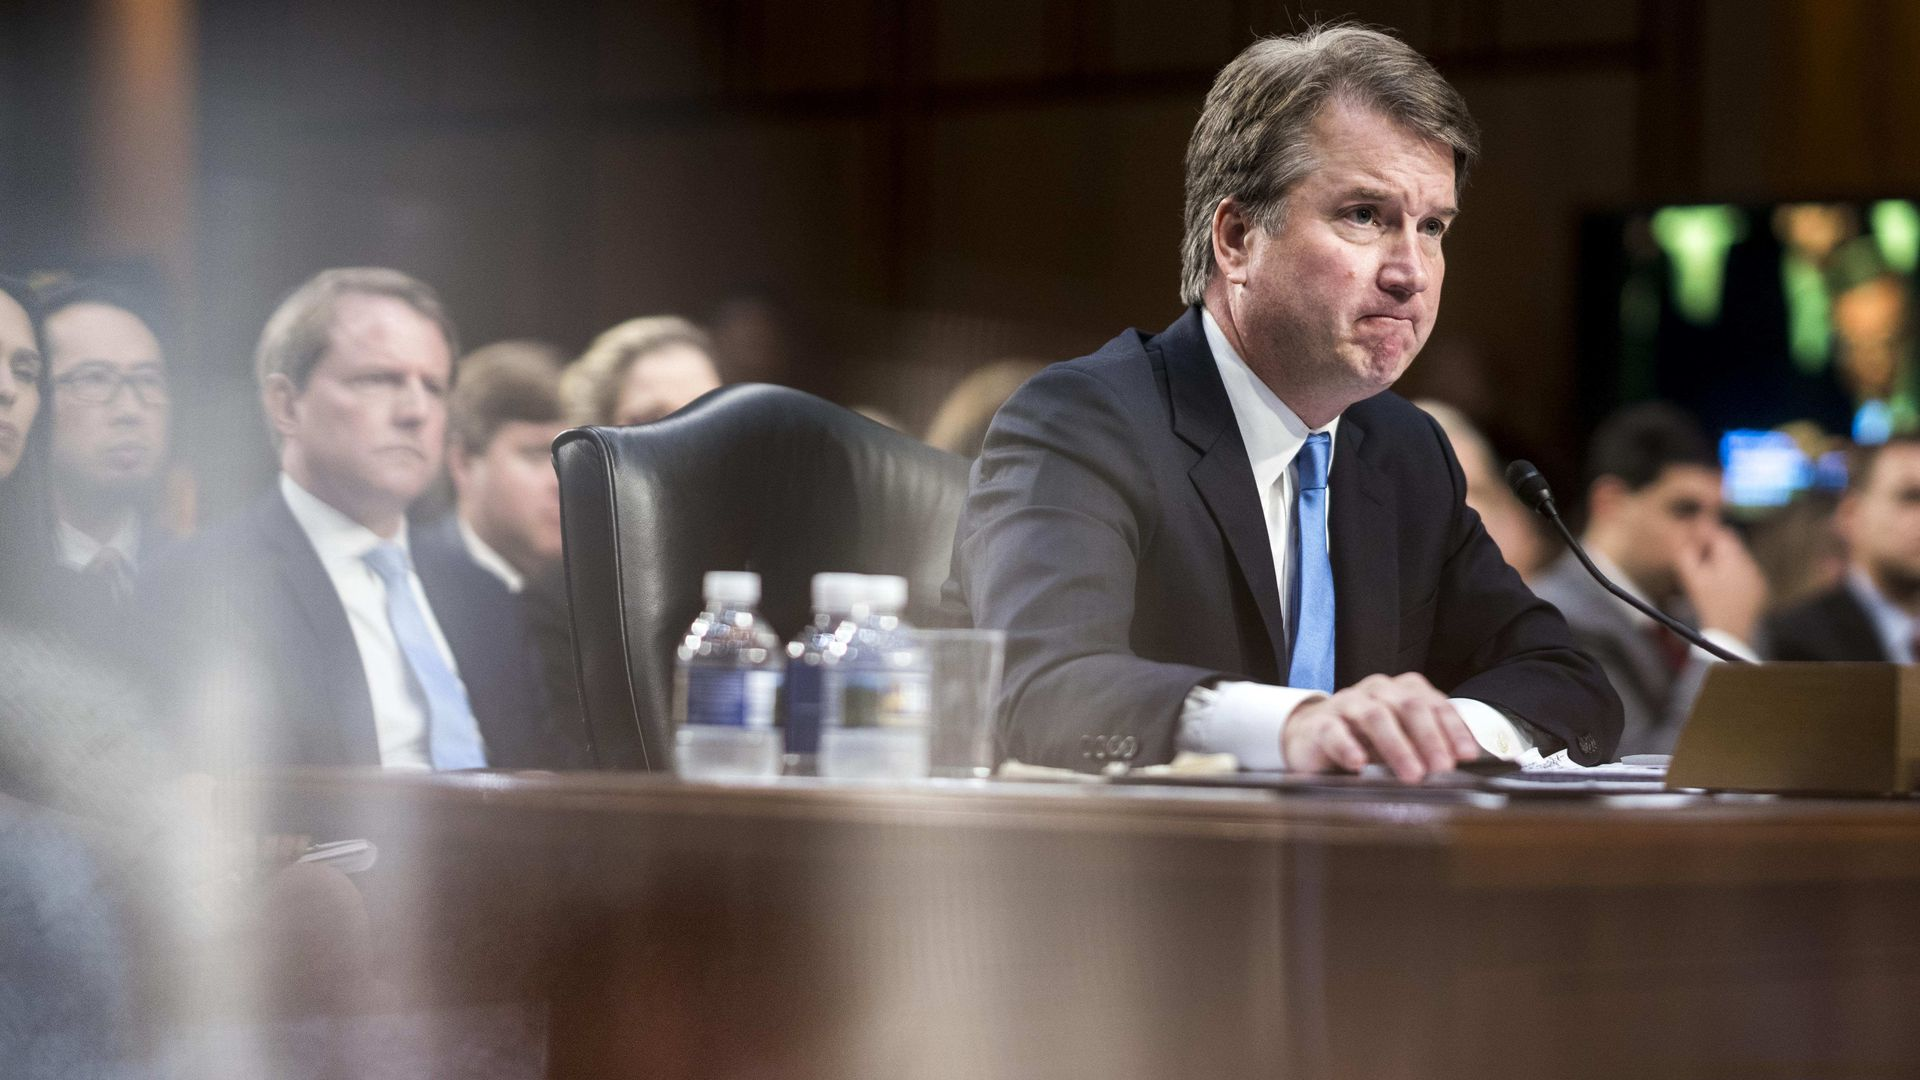 Supreme Court nominee Brett Kavanaugh during his confirmation hearing